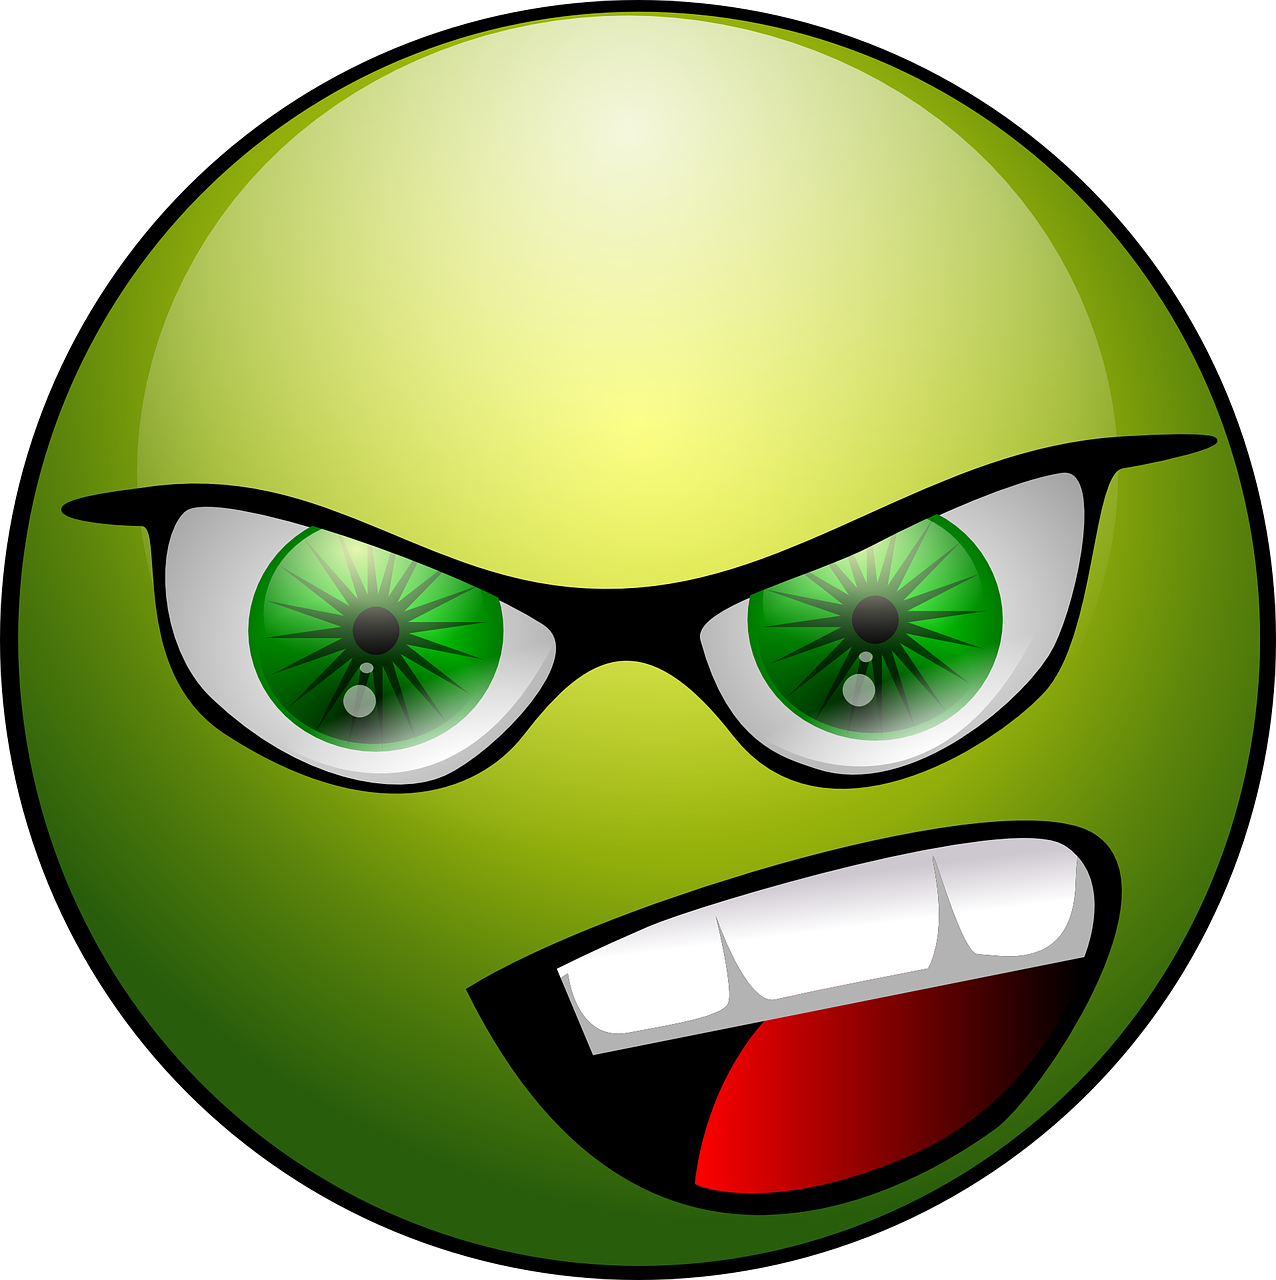 angry face emoticon free photo